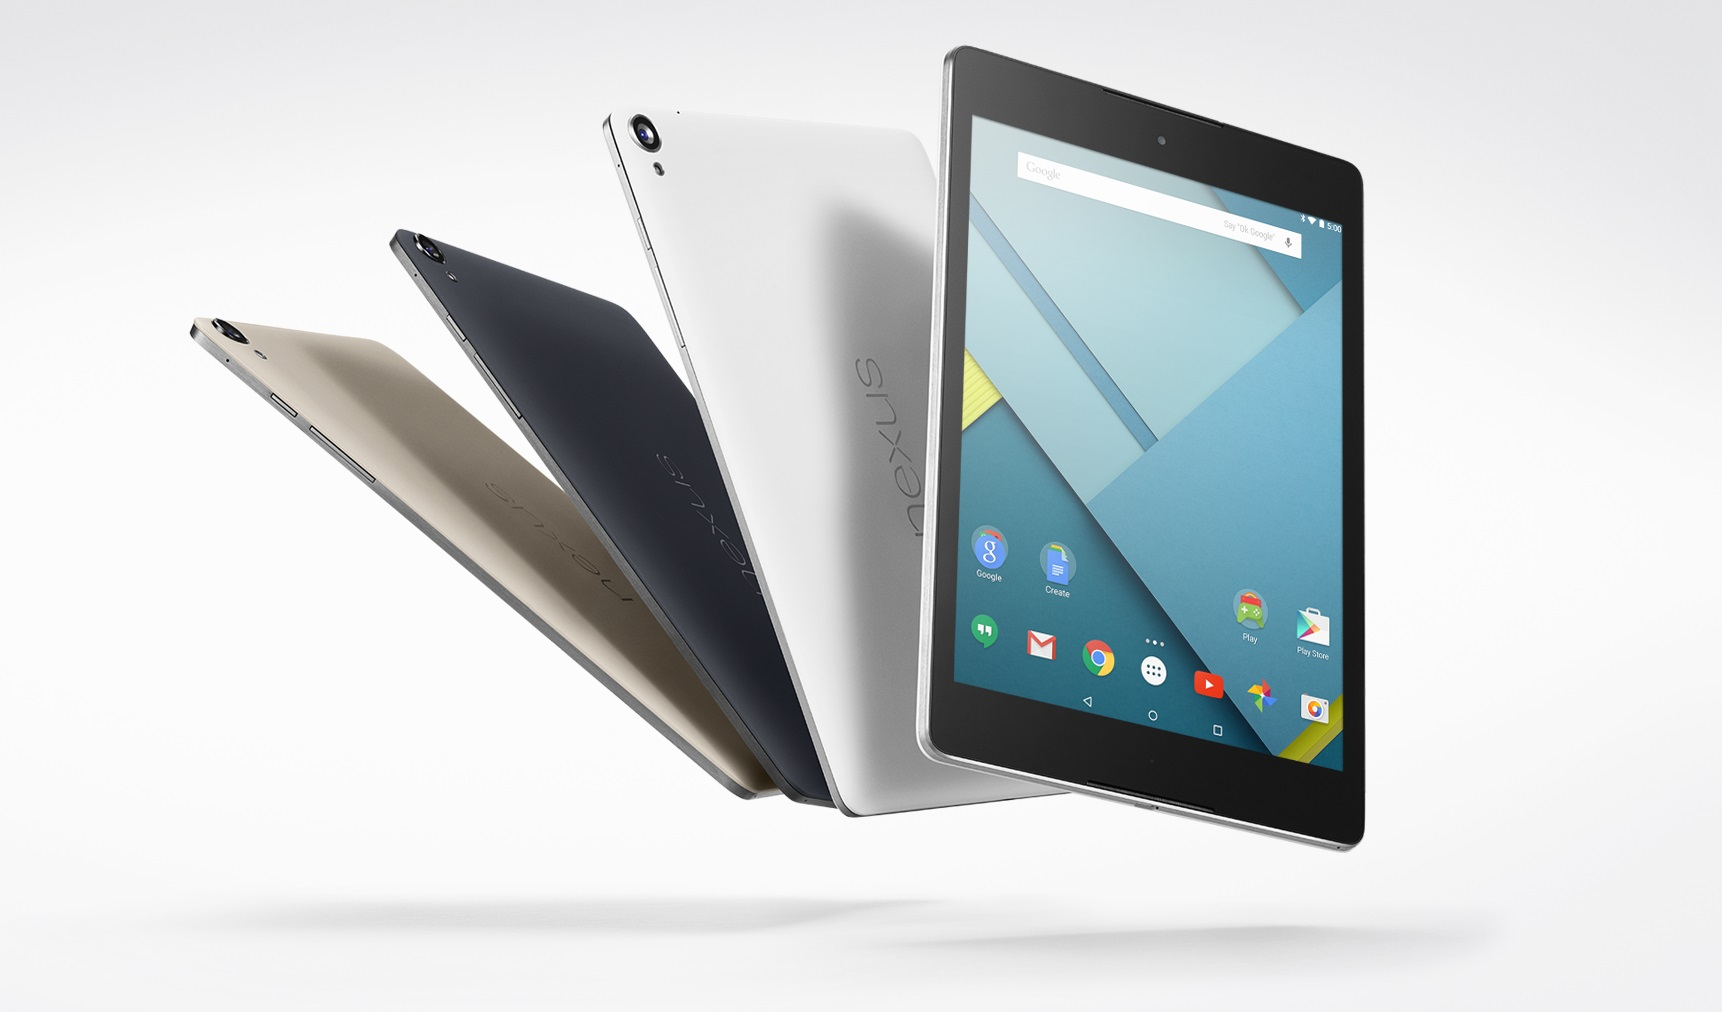 Nexus 9  8.9Inch Android 5.1 Lollipop Tablet Price From $349